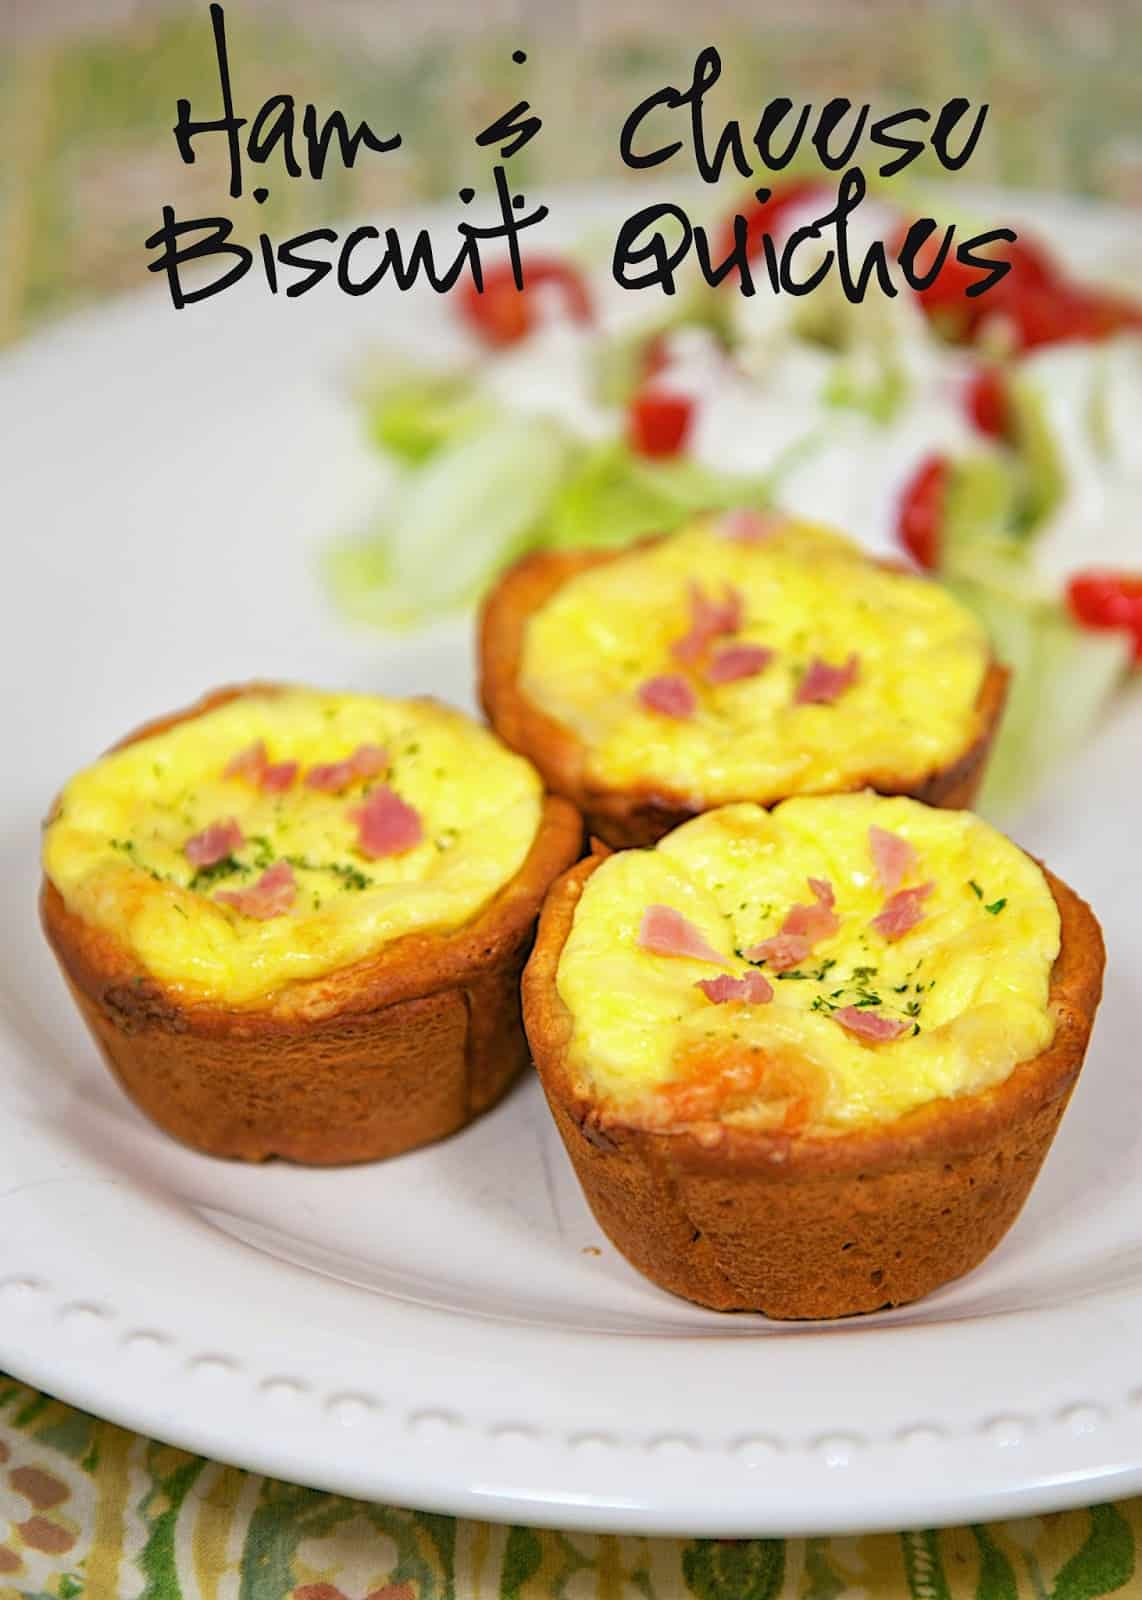 Ham & Cheese Biscuit Quiches Recipe - ham and cheese quiche baked in a biscuit crust. Great way to use up leftover holiday ham! Freeze leftovers for a quick meal later!!